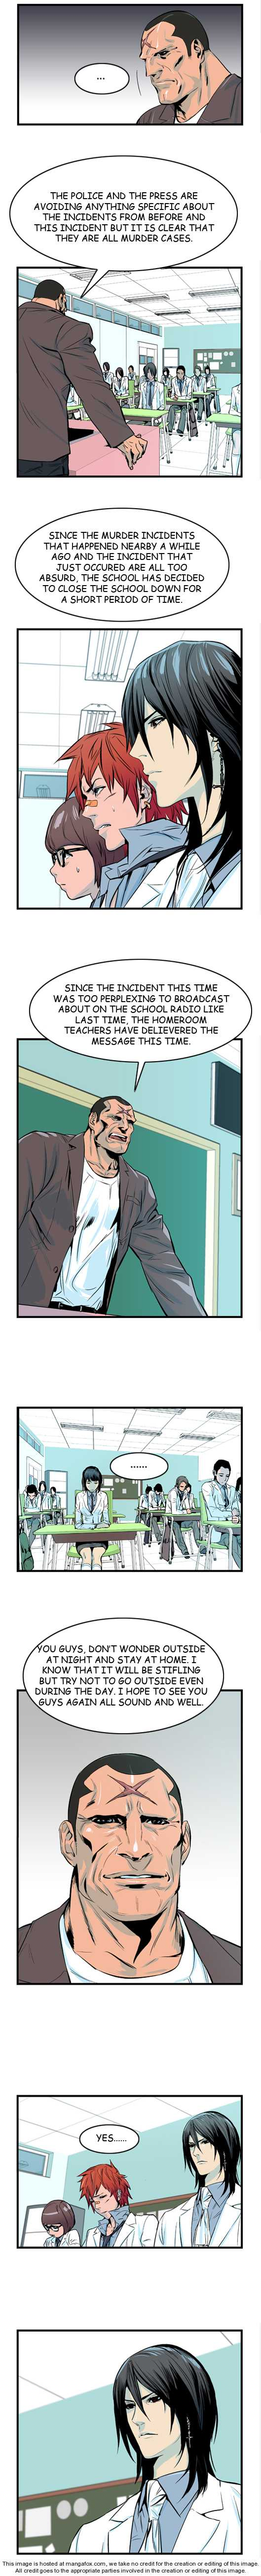 Noblesse 40 Page 3